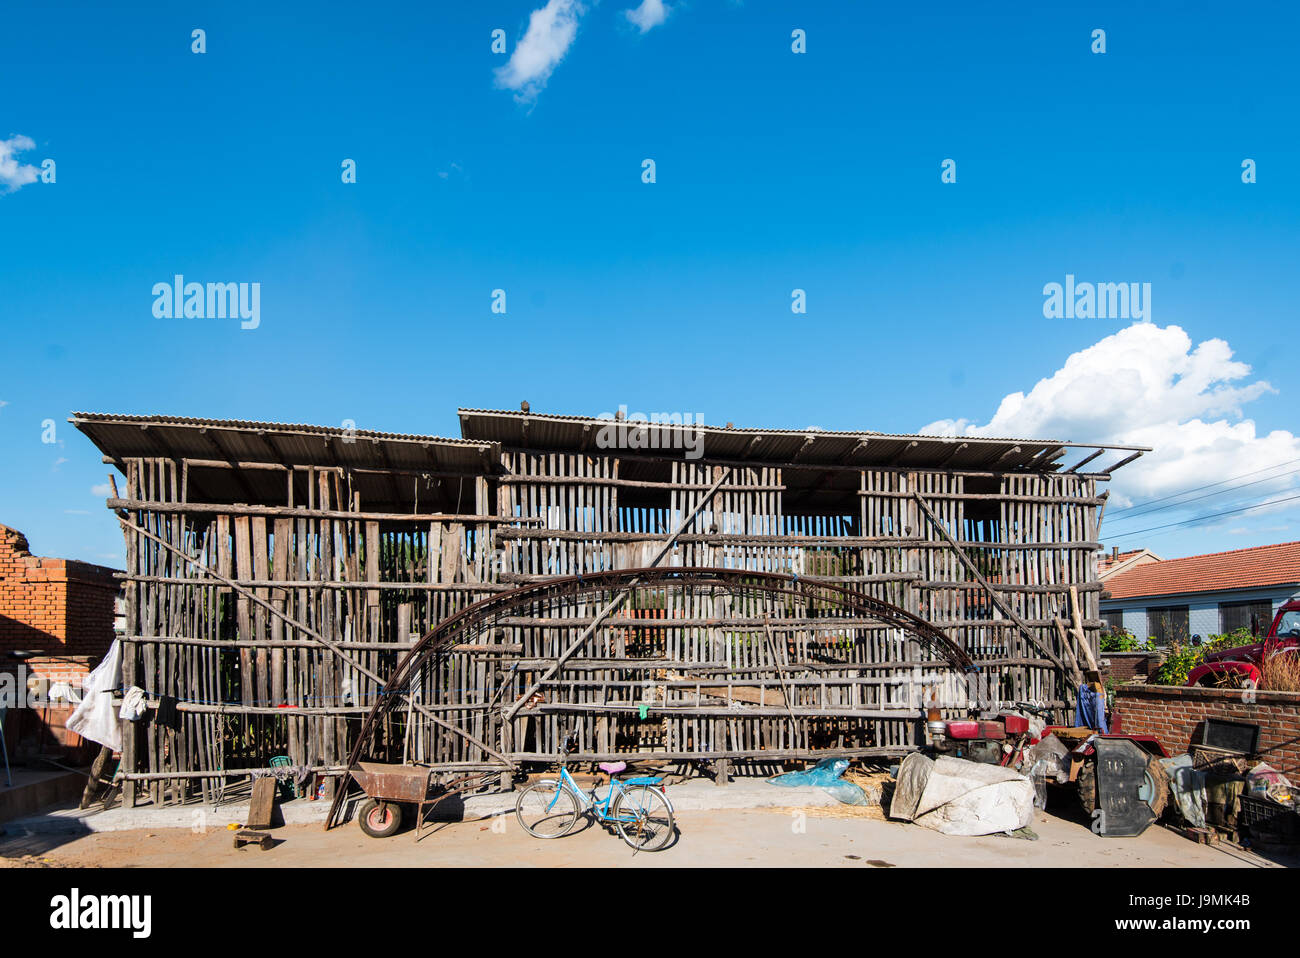 Farmyard near Xifeng, Liaoning, China. The large wooden structure is used for drying and storing corn cobs which - Stock Image